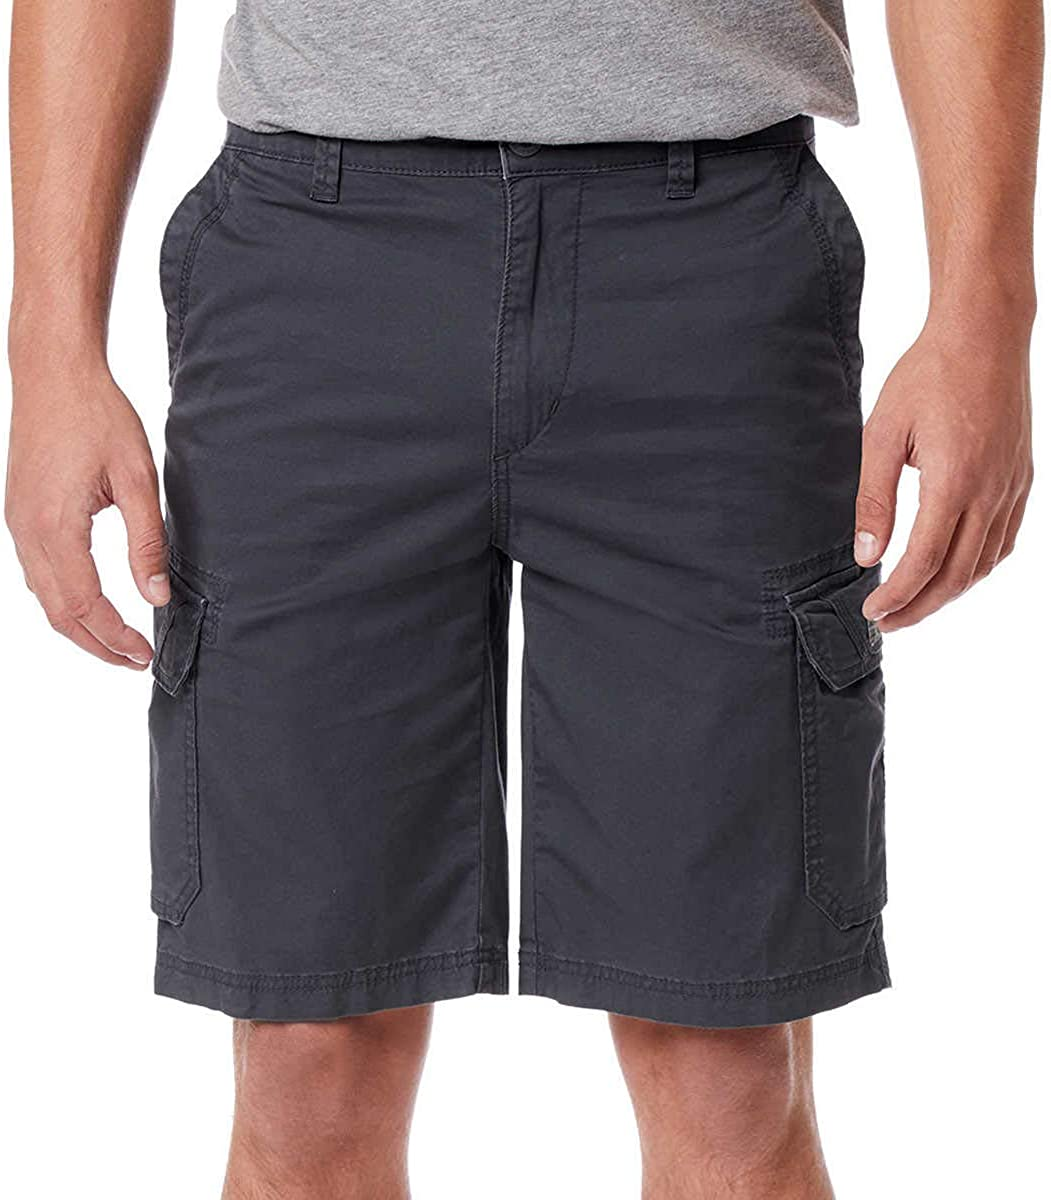 Comfort Stretch UNIONBAY Montego Cargo Shorts for Men Assorted Colors and Sizes